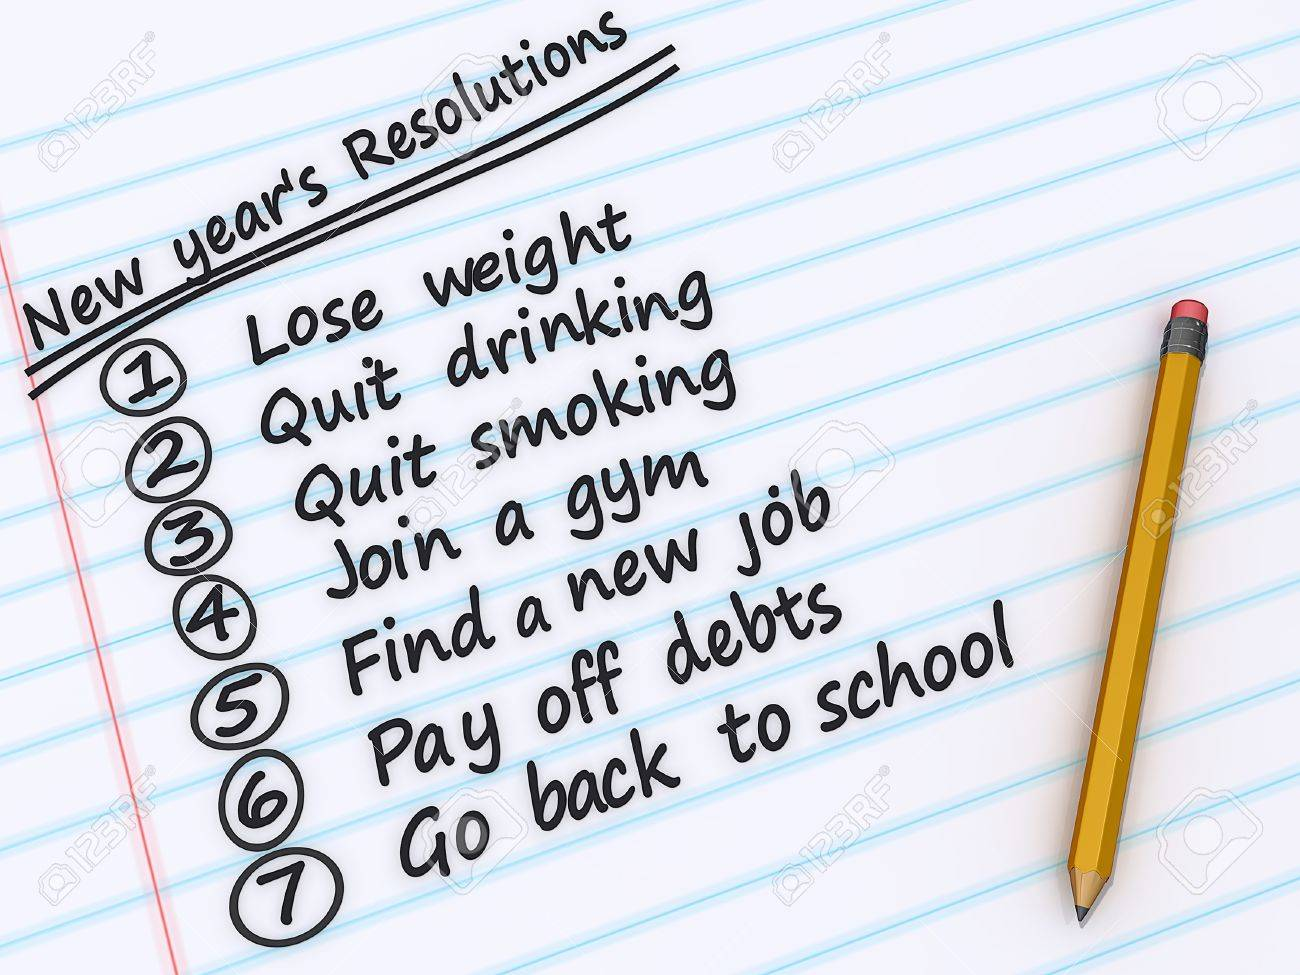 A list of New years resolutions on a sheet of paper Stock Photo - 16023018